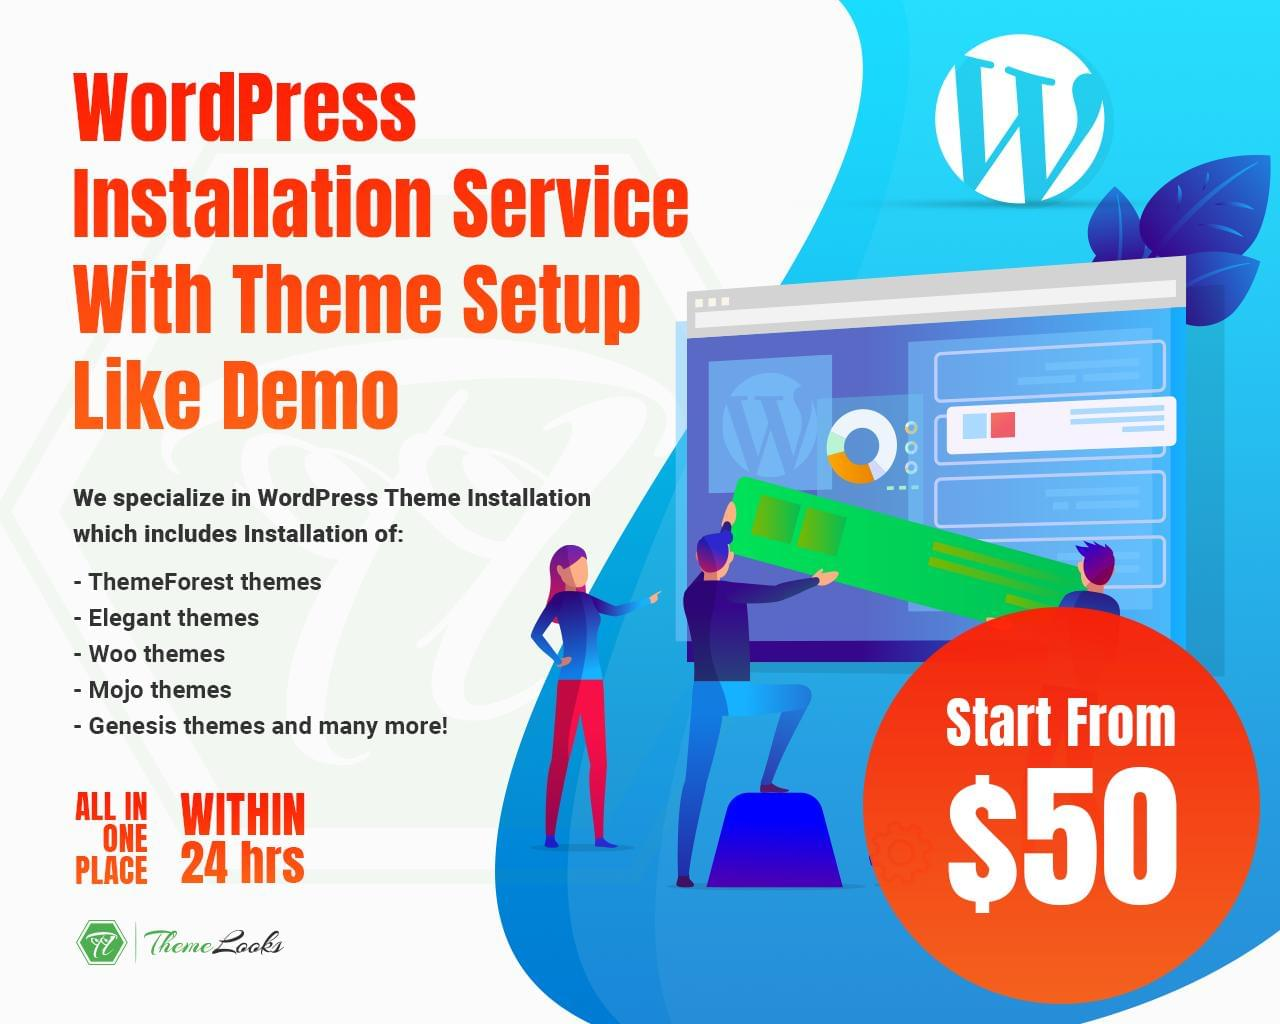 WordPress Installation Service With Theme Setup Like Demo by themelooks - 113907